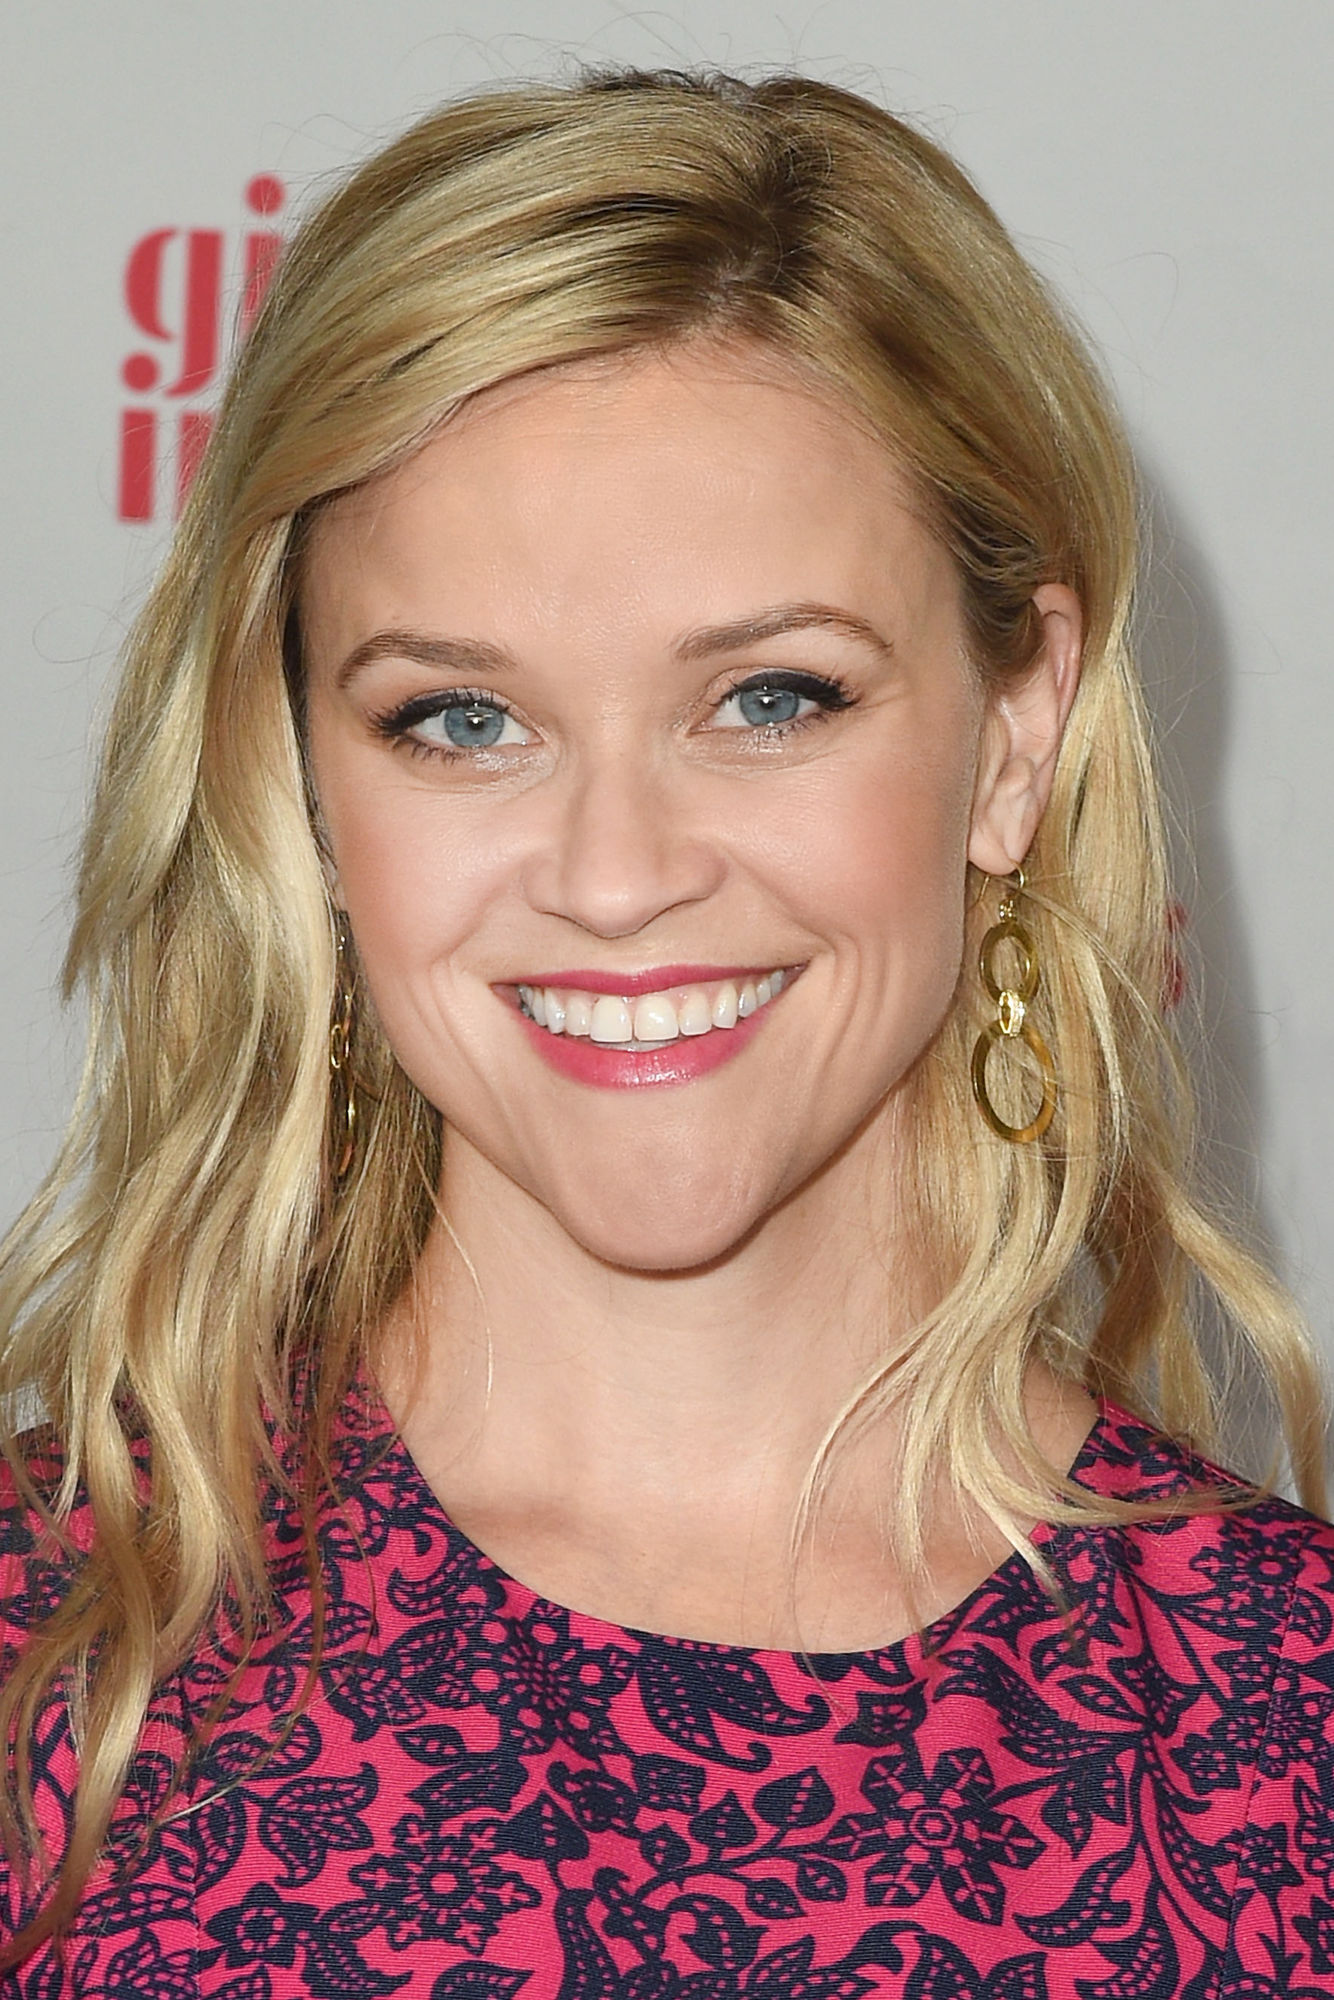 Reese Witherspoon's Latest 'Gram Proves Her Family Couldn't Look More Alike